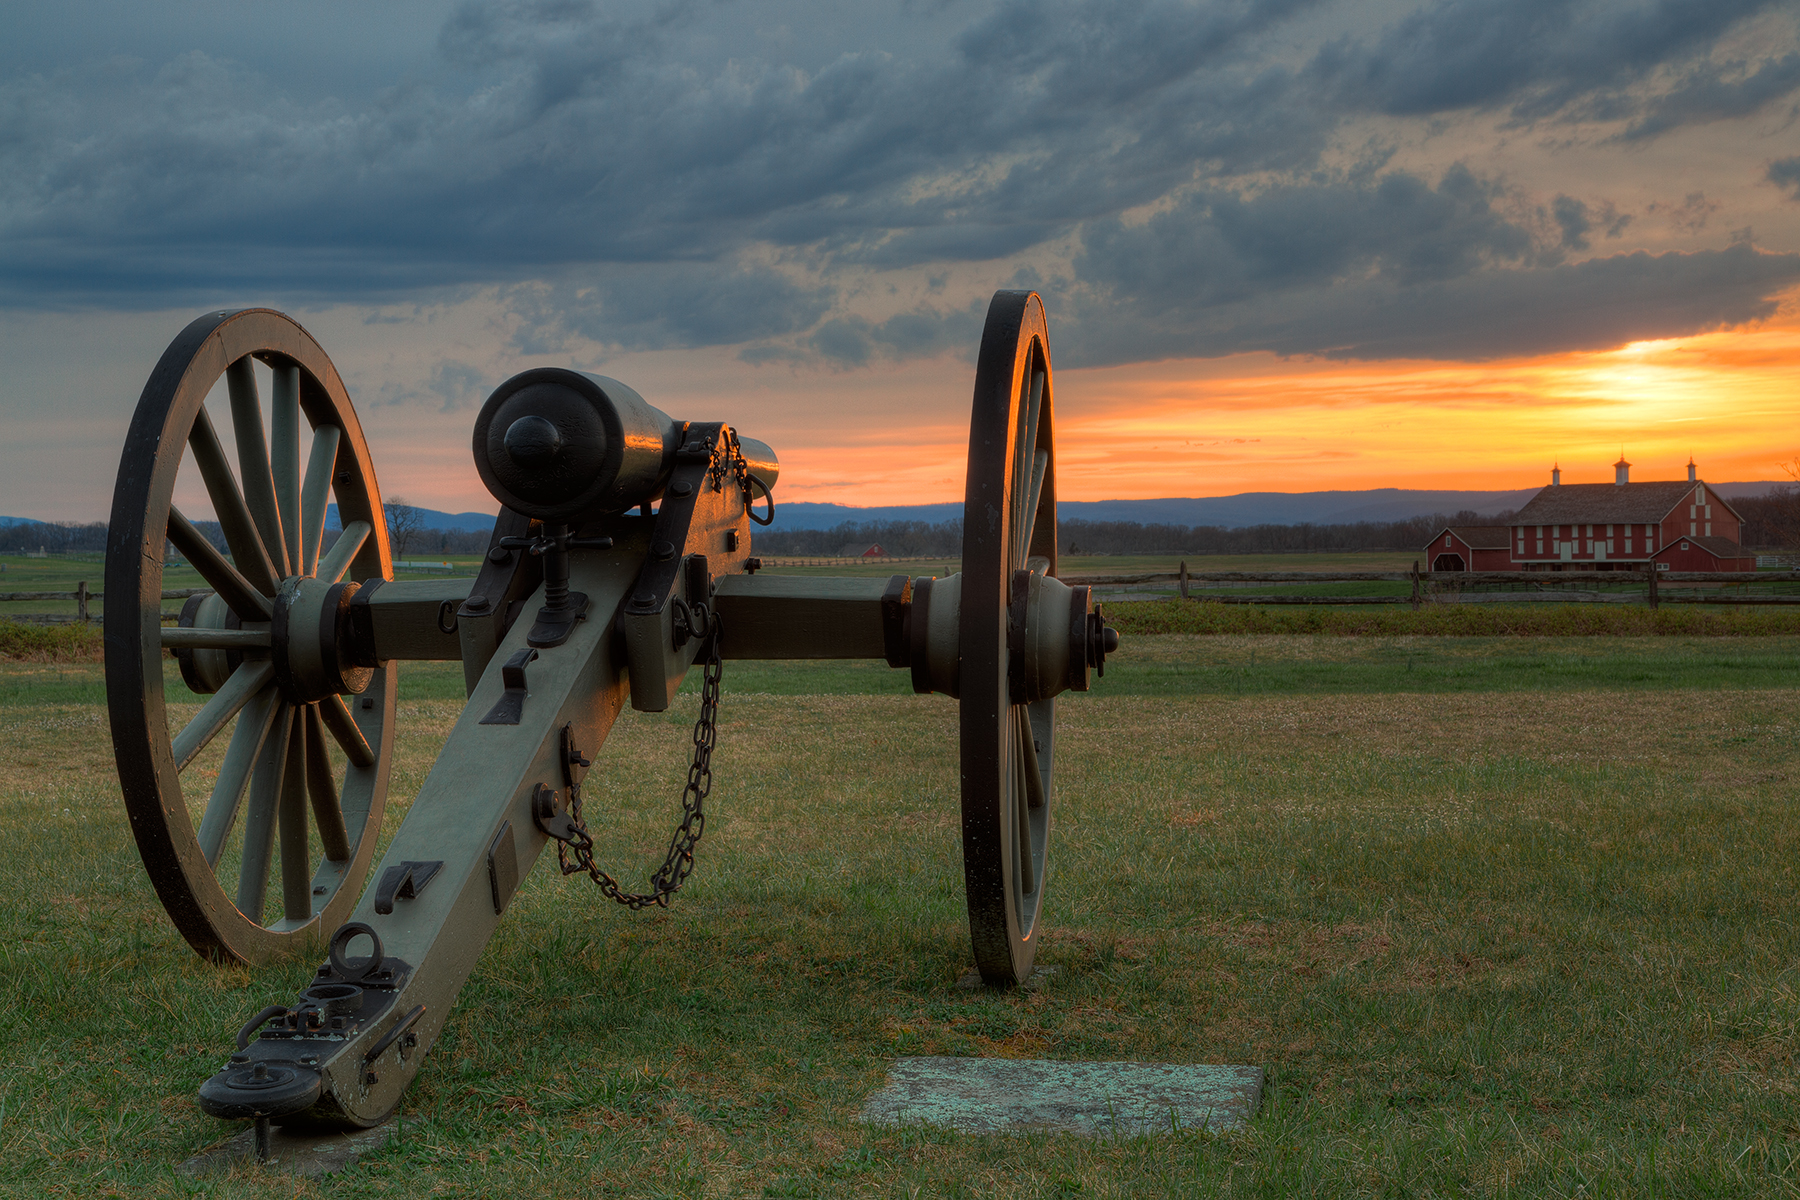 Gettysburg cannon sunset - hdr photo